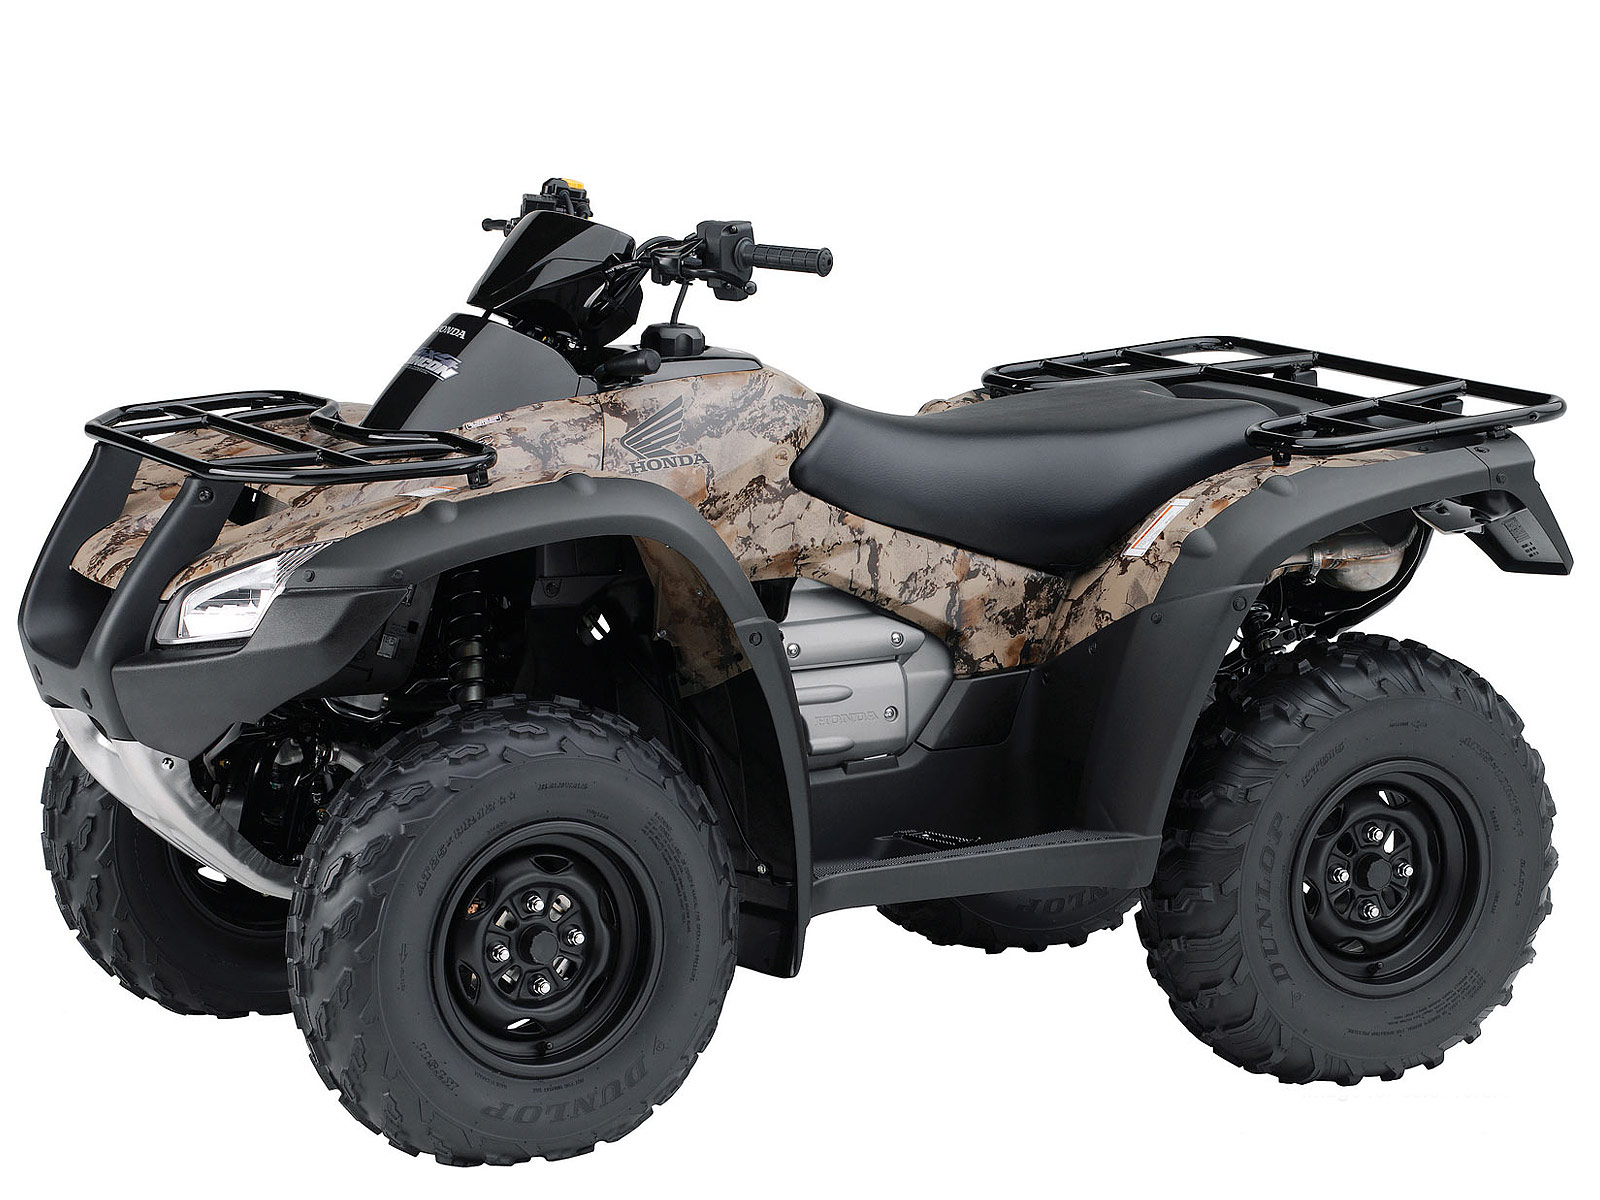 2011 FourTrax Rincon TRX680FA HONDA ATV pictures and specs.